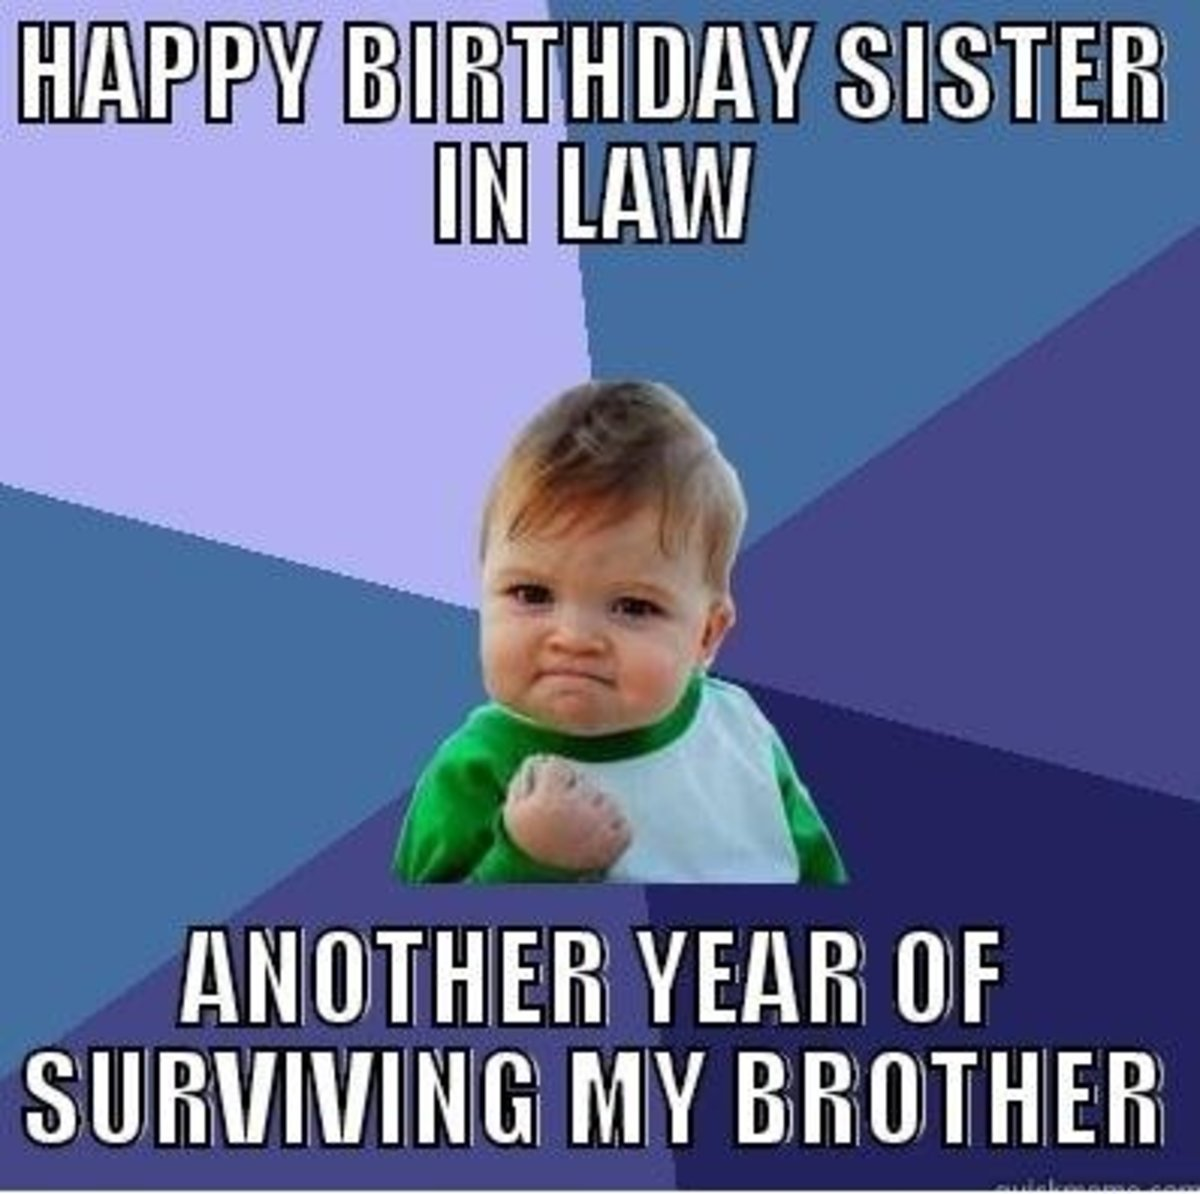 Funny Meme Sister : Happy birthday sister in law quotes and meme hubpages